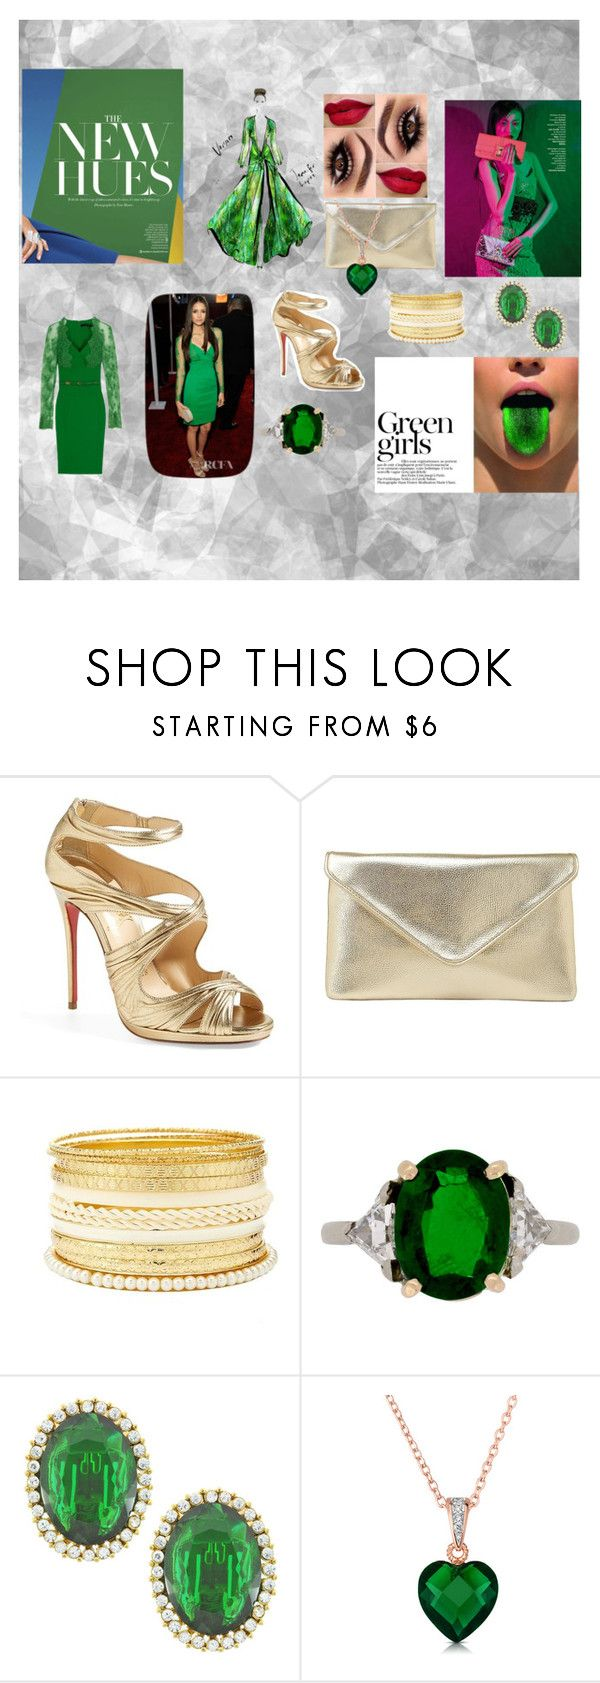 Green Girls by kelly17-kalymnos on Polyvore featuring Christian Louboutin, Charlotte Russe, Kenneth Jay Lane, Collette Z, Munro American, Elie Saab, Green Girls and Amica